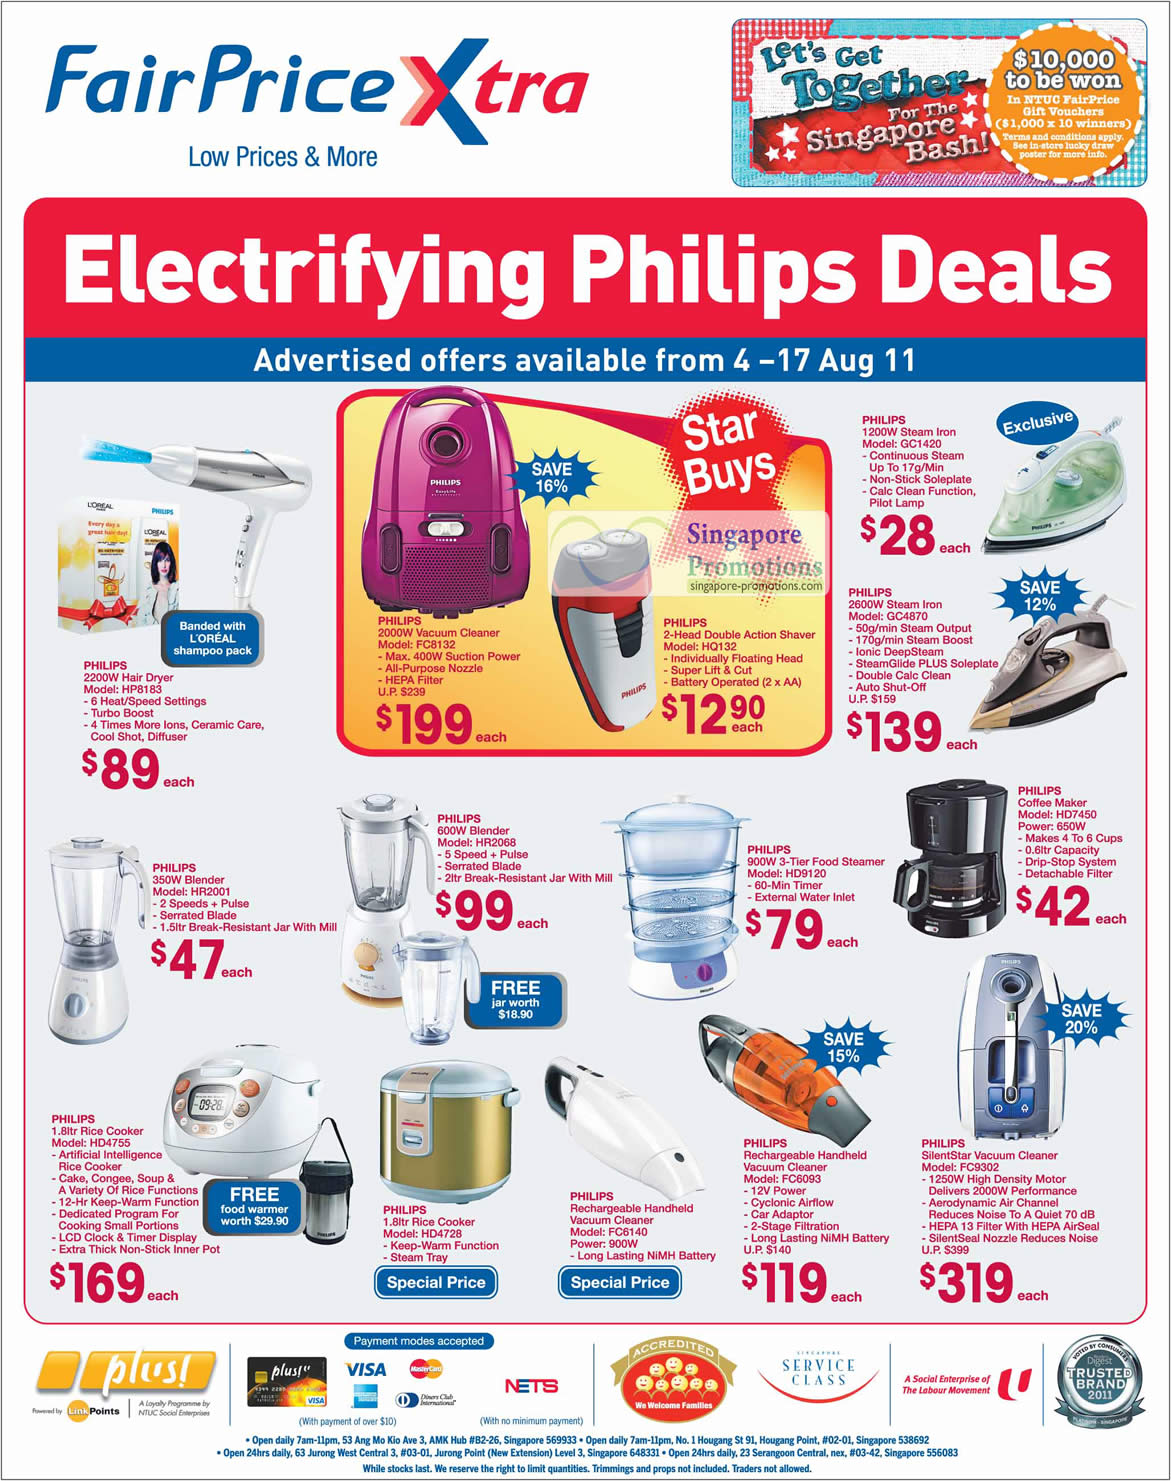 Philips Electronics Kitchenware, Husehold, Personal Care